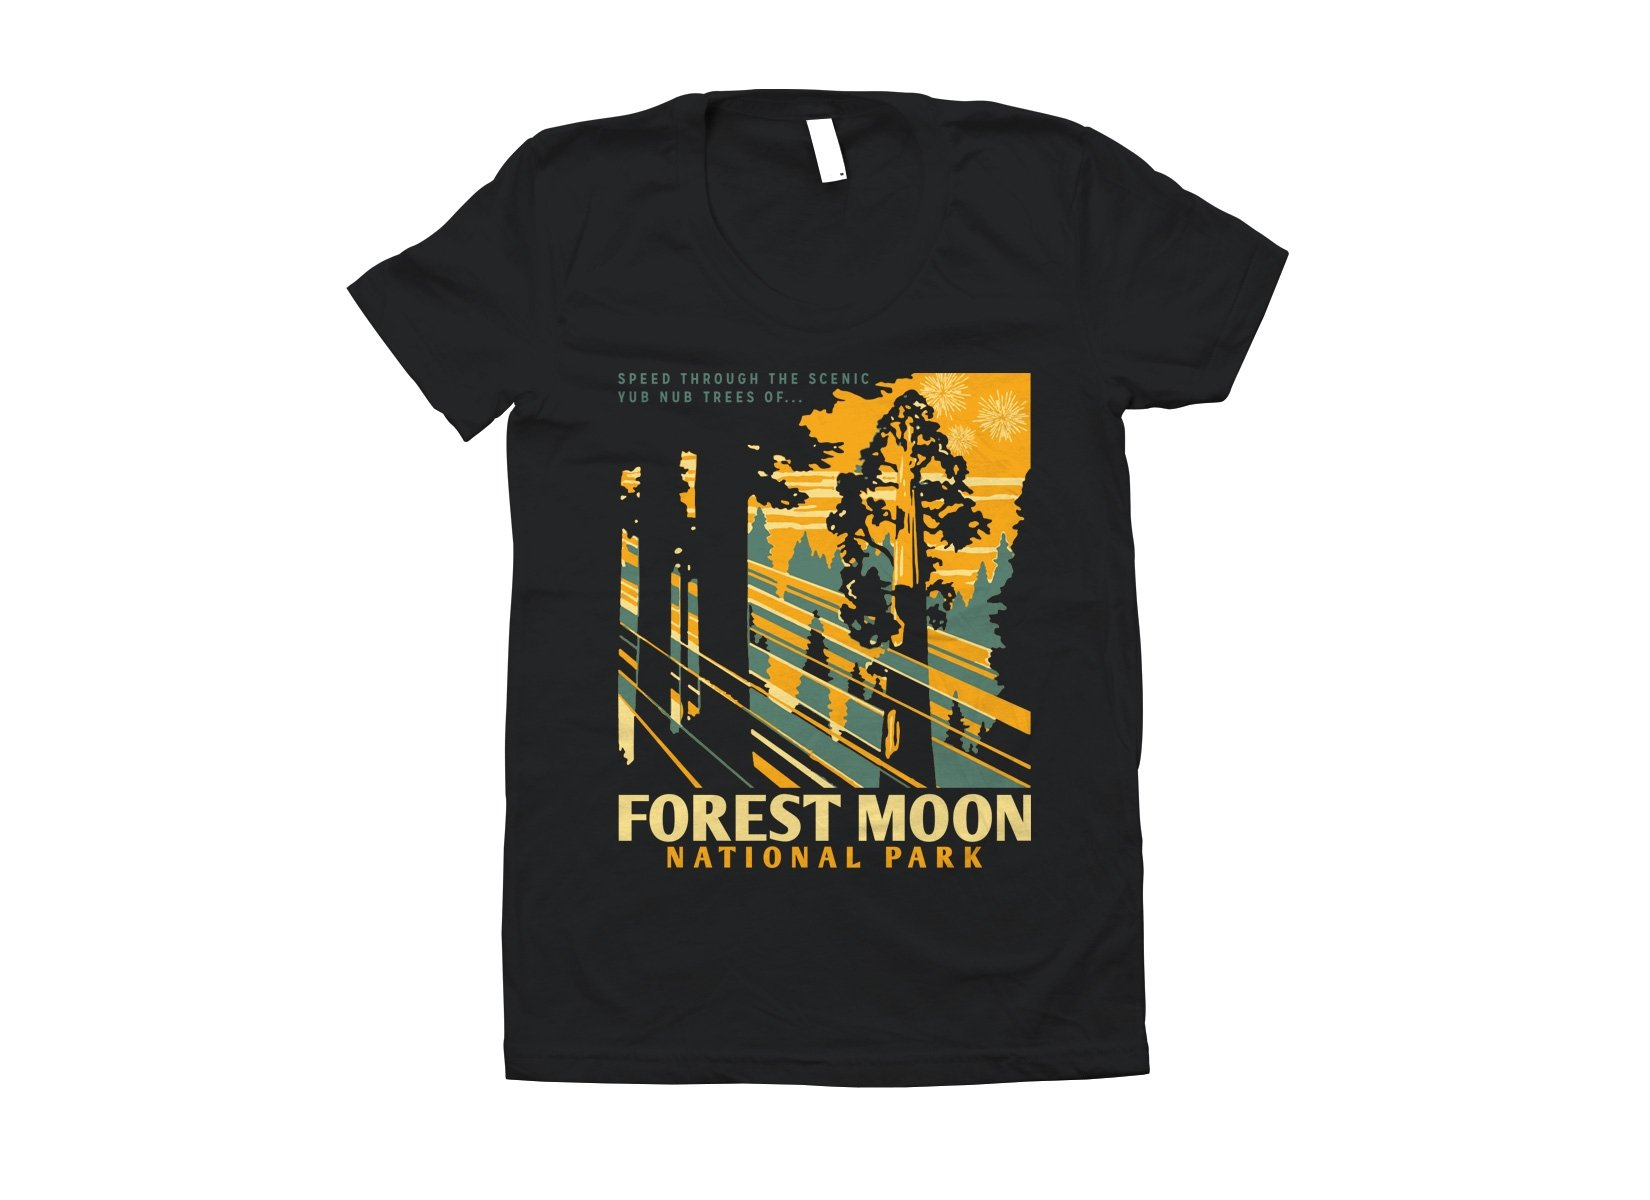 Forest Moon National Park on Juniors T-Shirt